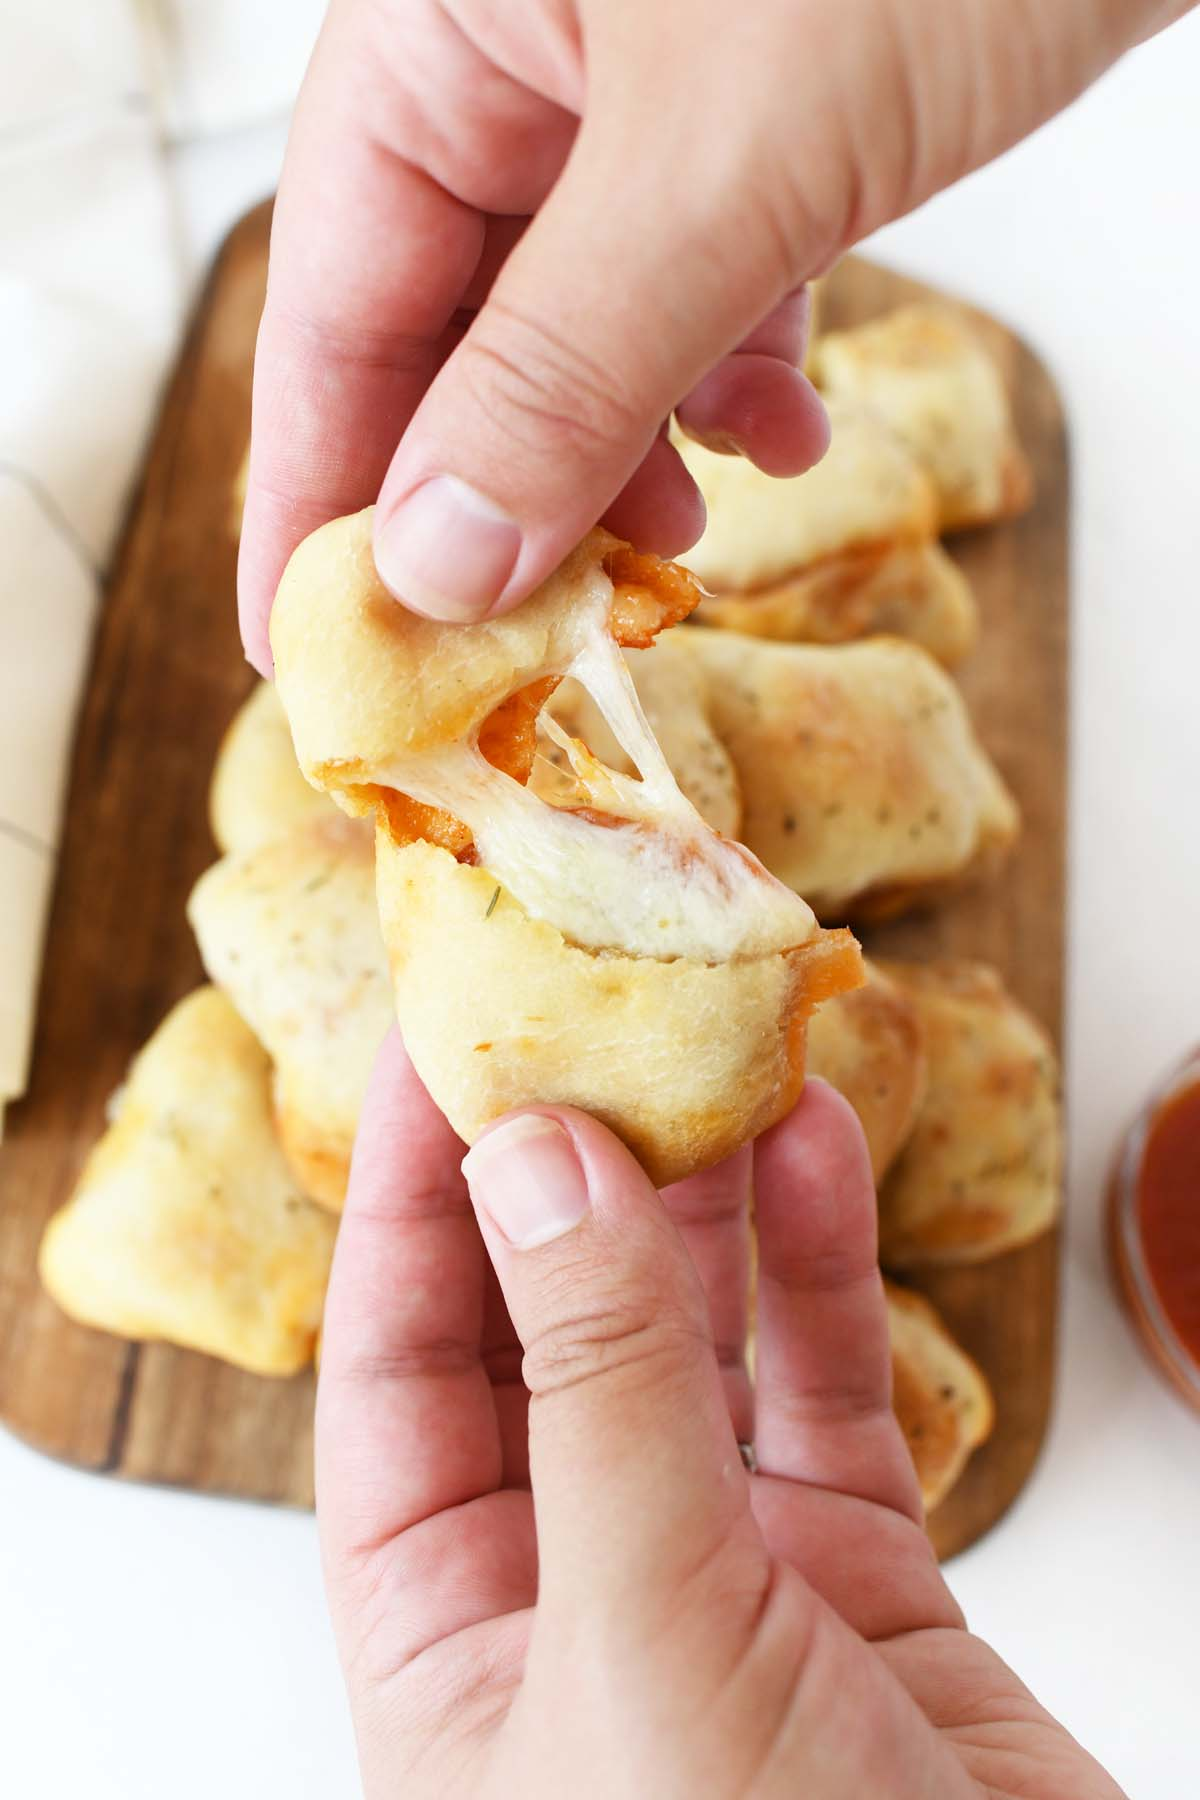 A hand stretching a cheesy pepperoni pizza roll.